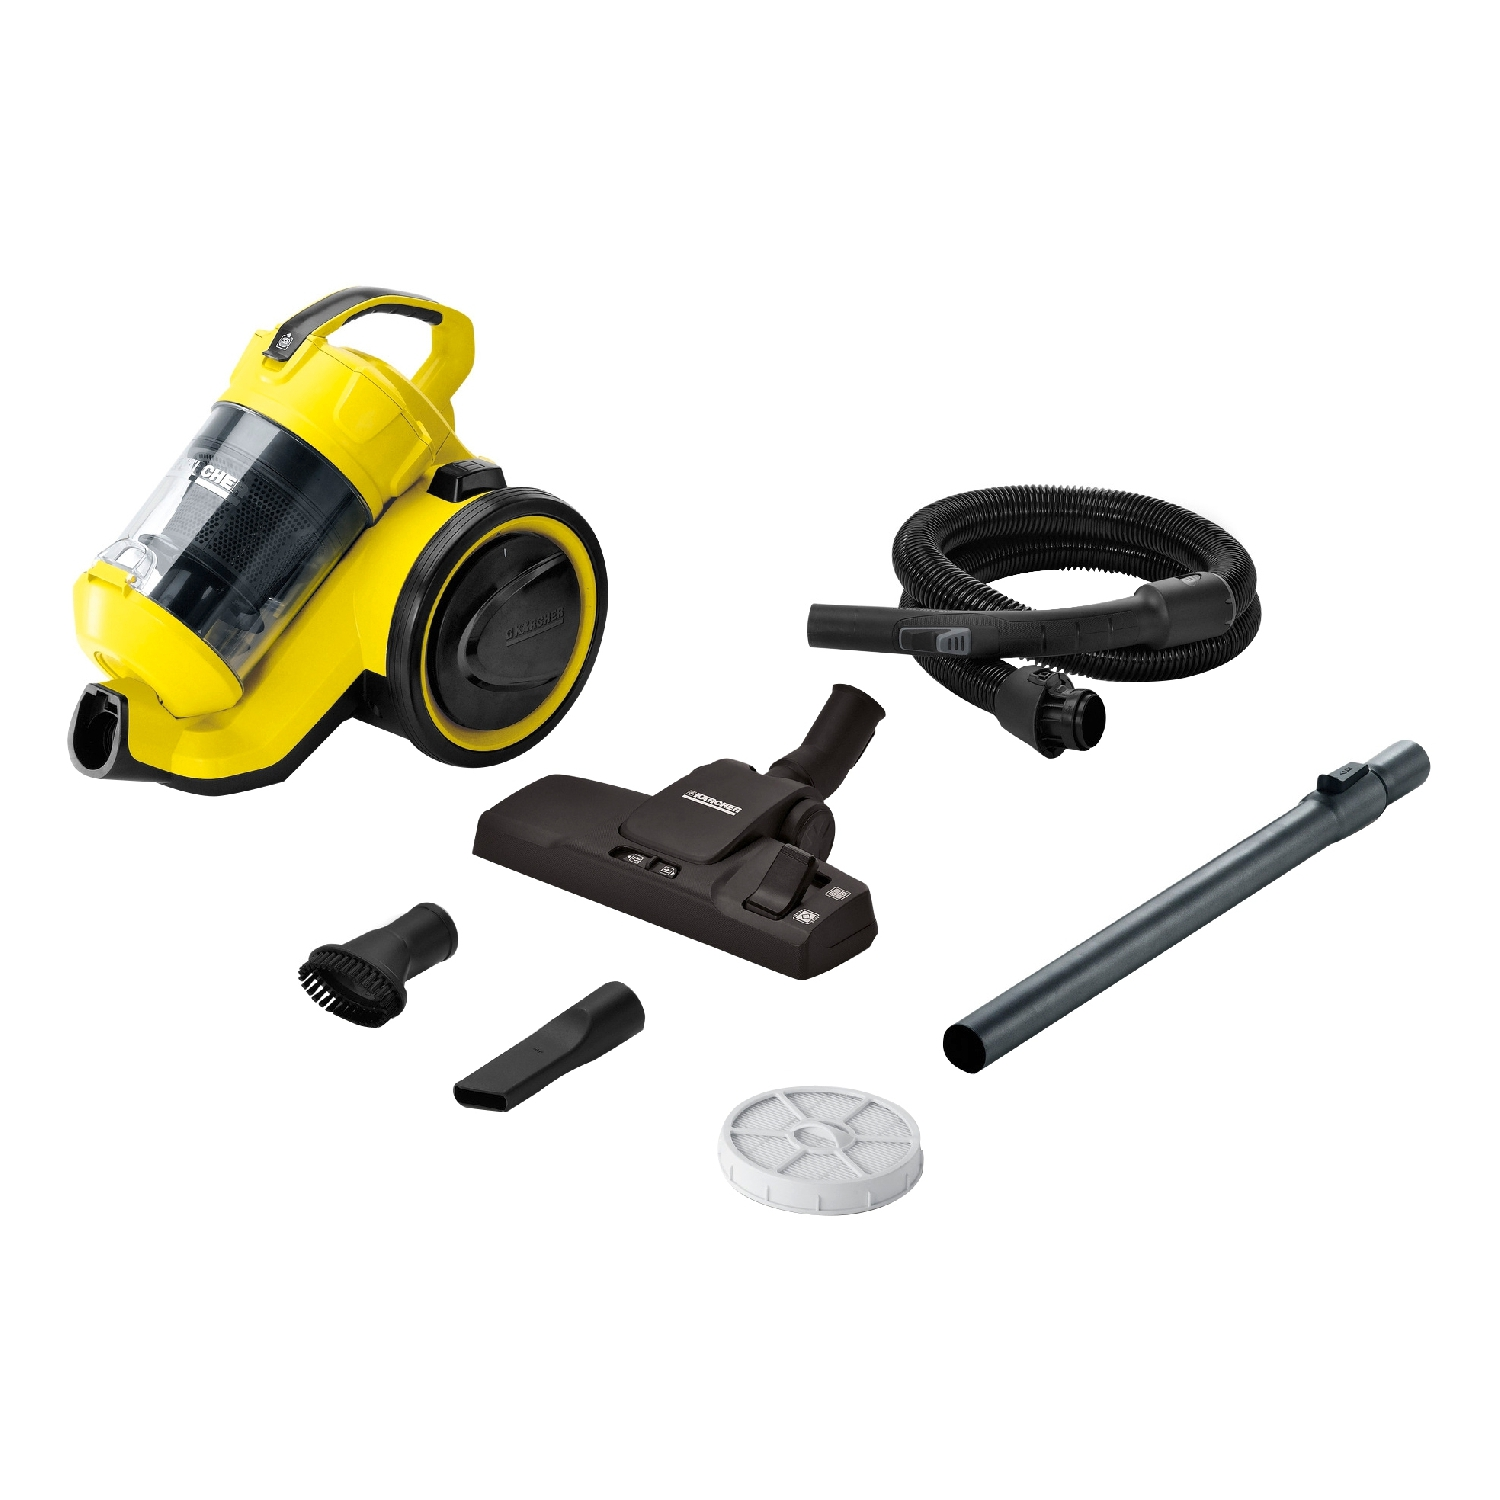 The electric vacuum cleaner KARCHER VC 3 haier vacuum cleaner accessories plumbing hose extension tube zw1200 3 zw1200 4